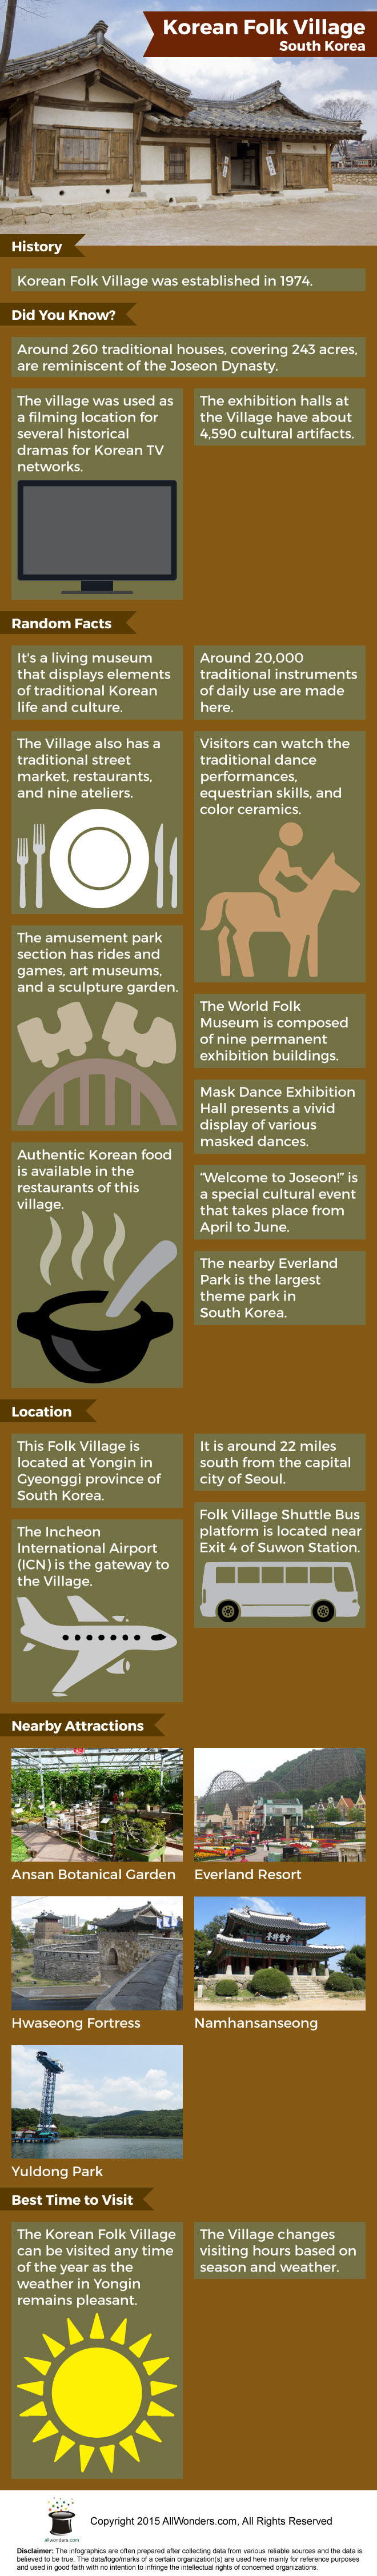 Korean Folk Village Infographic